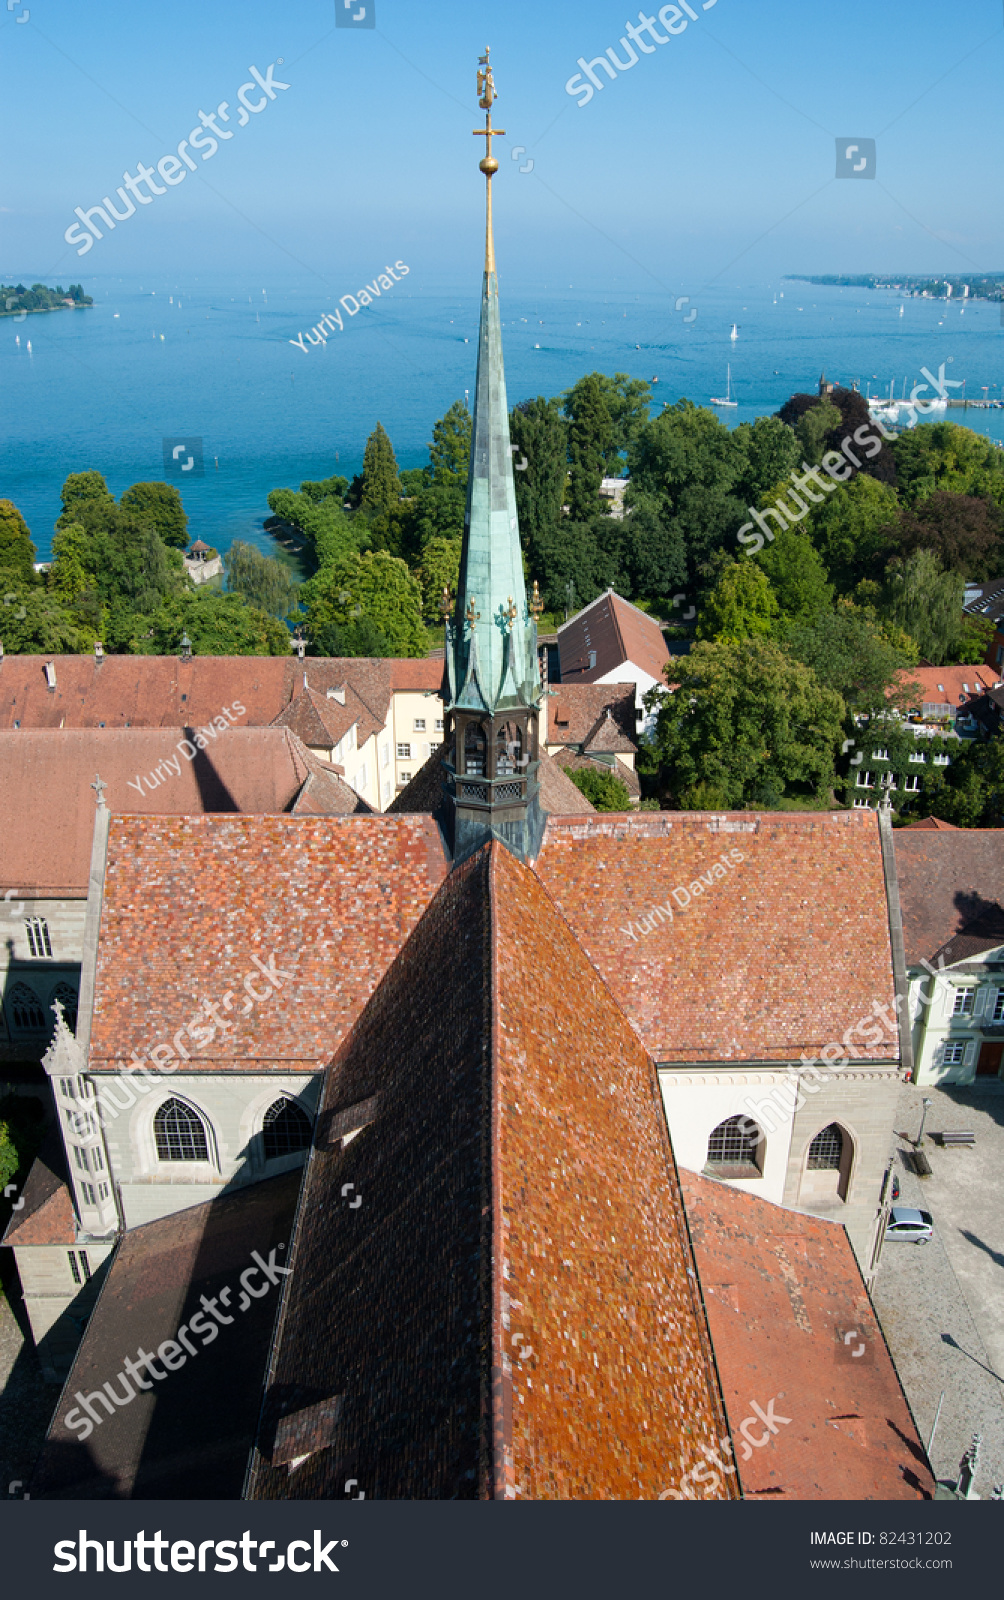 Roof and tower of constance church and boden lake germany for Boden germany